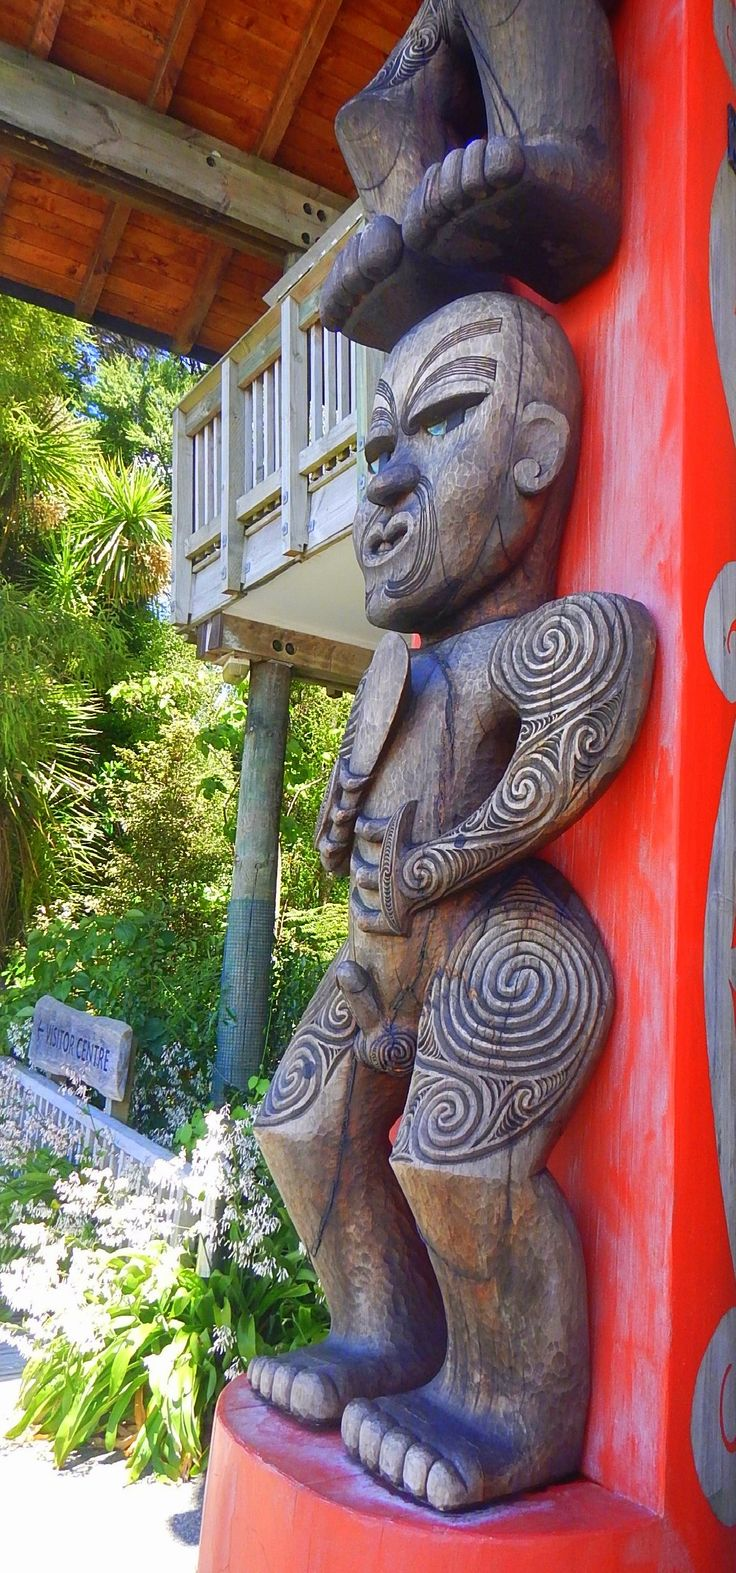 Maori carving on a pou (guardian post) at Arataki Visitor Centre in the Waitakere Ranges Regional Park, Auckland, NZ